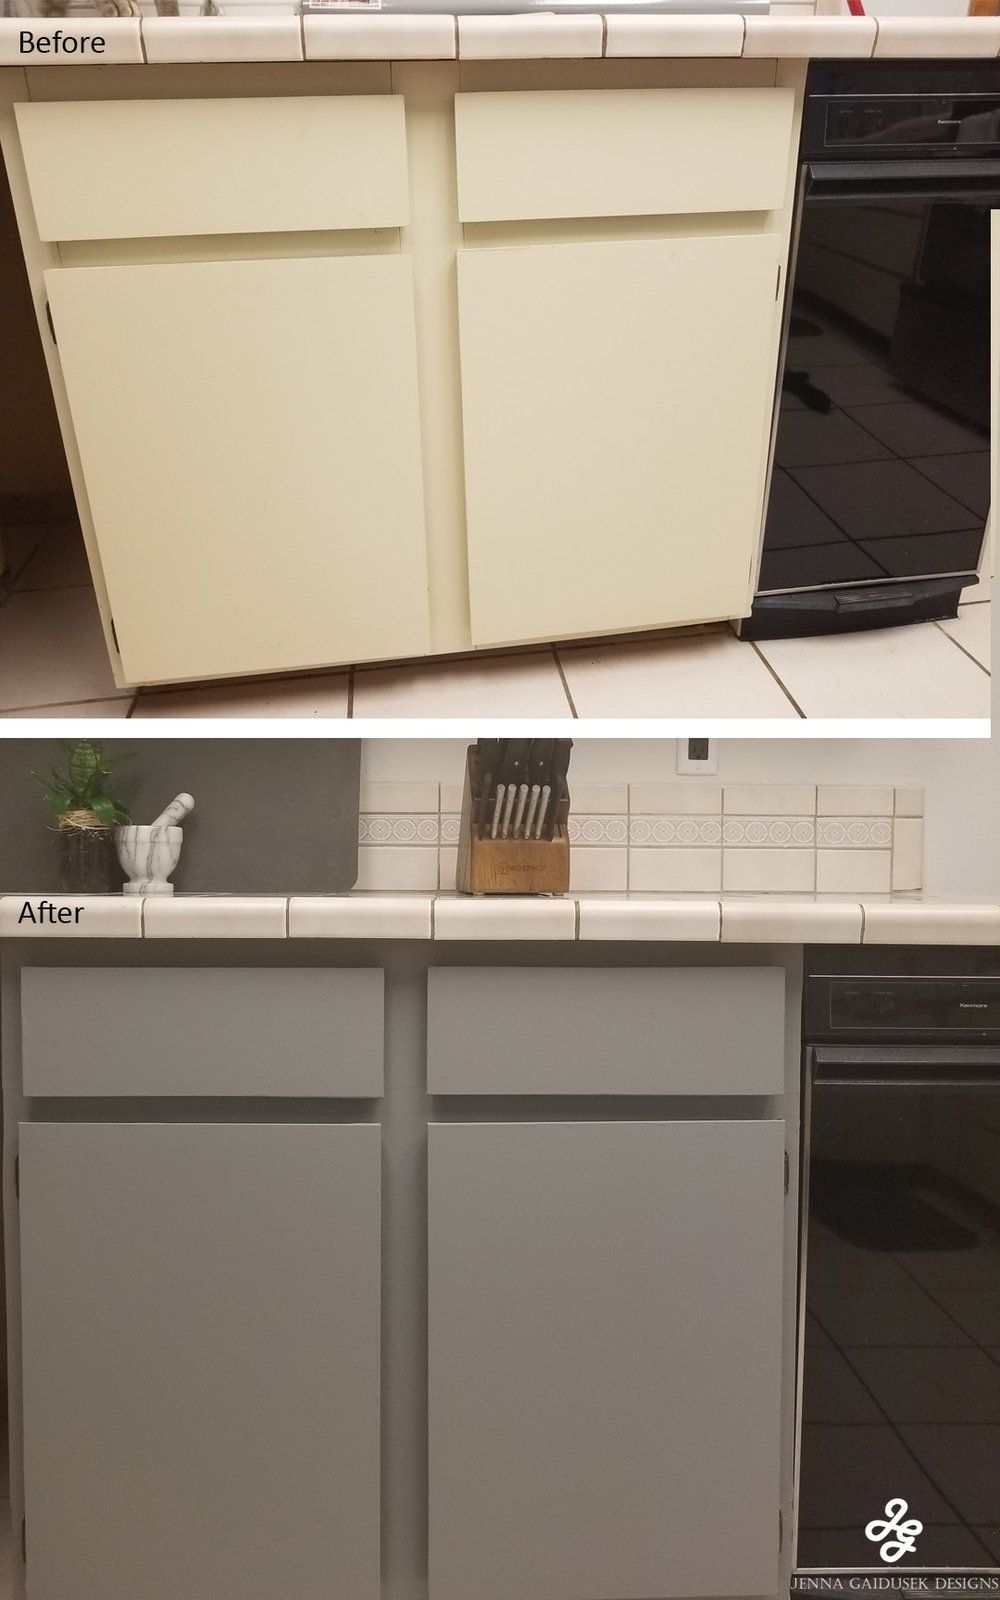 The Peel And Stick Makeover Wallpapered Fridge Aunt Peaches Retro Home Home Decor Diy Kitchen Projects